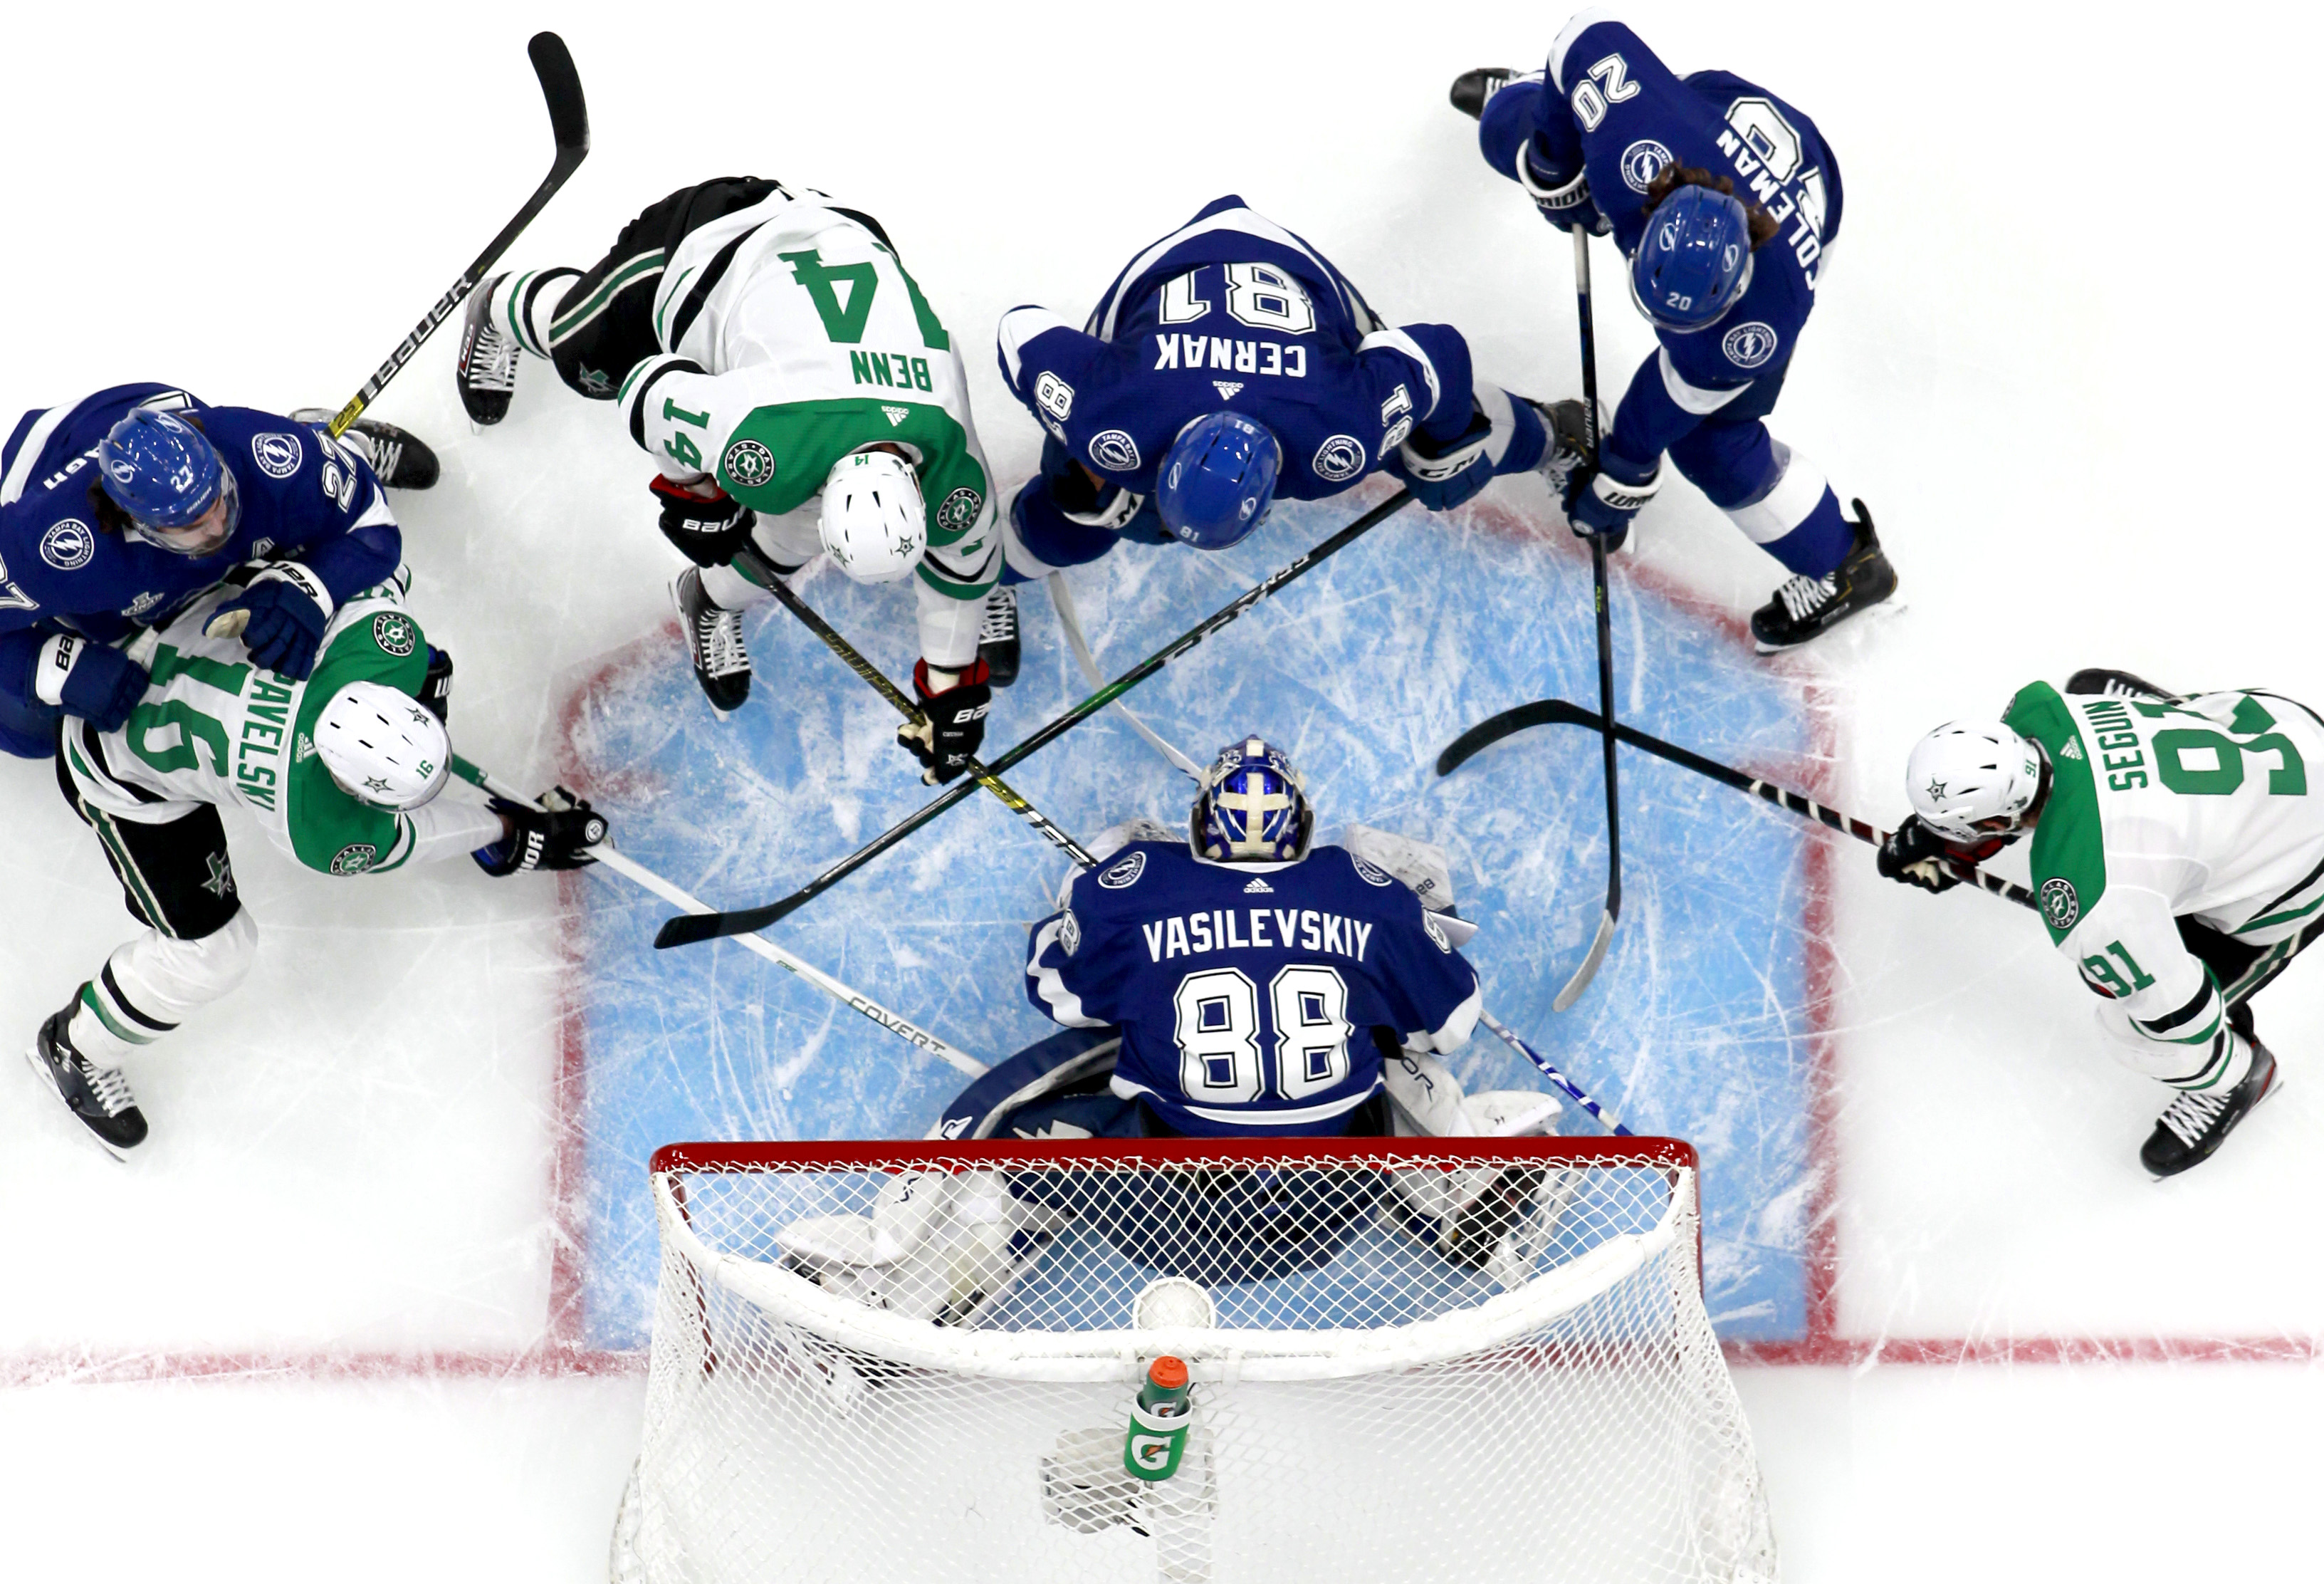 Goaltender Andrei Vasilevskiy of the Tampa Bay Lightning makes a save against Jamie Benn and Joe Pavelski of the Dallas Stars as defenseman Erik Cernak  helps defend the play in the first period of Game 2 of the NHL Stanley Cup Final at Rogers Place on September 21, 2020 in Edmonton, Alberta, Canada.